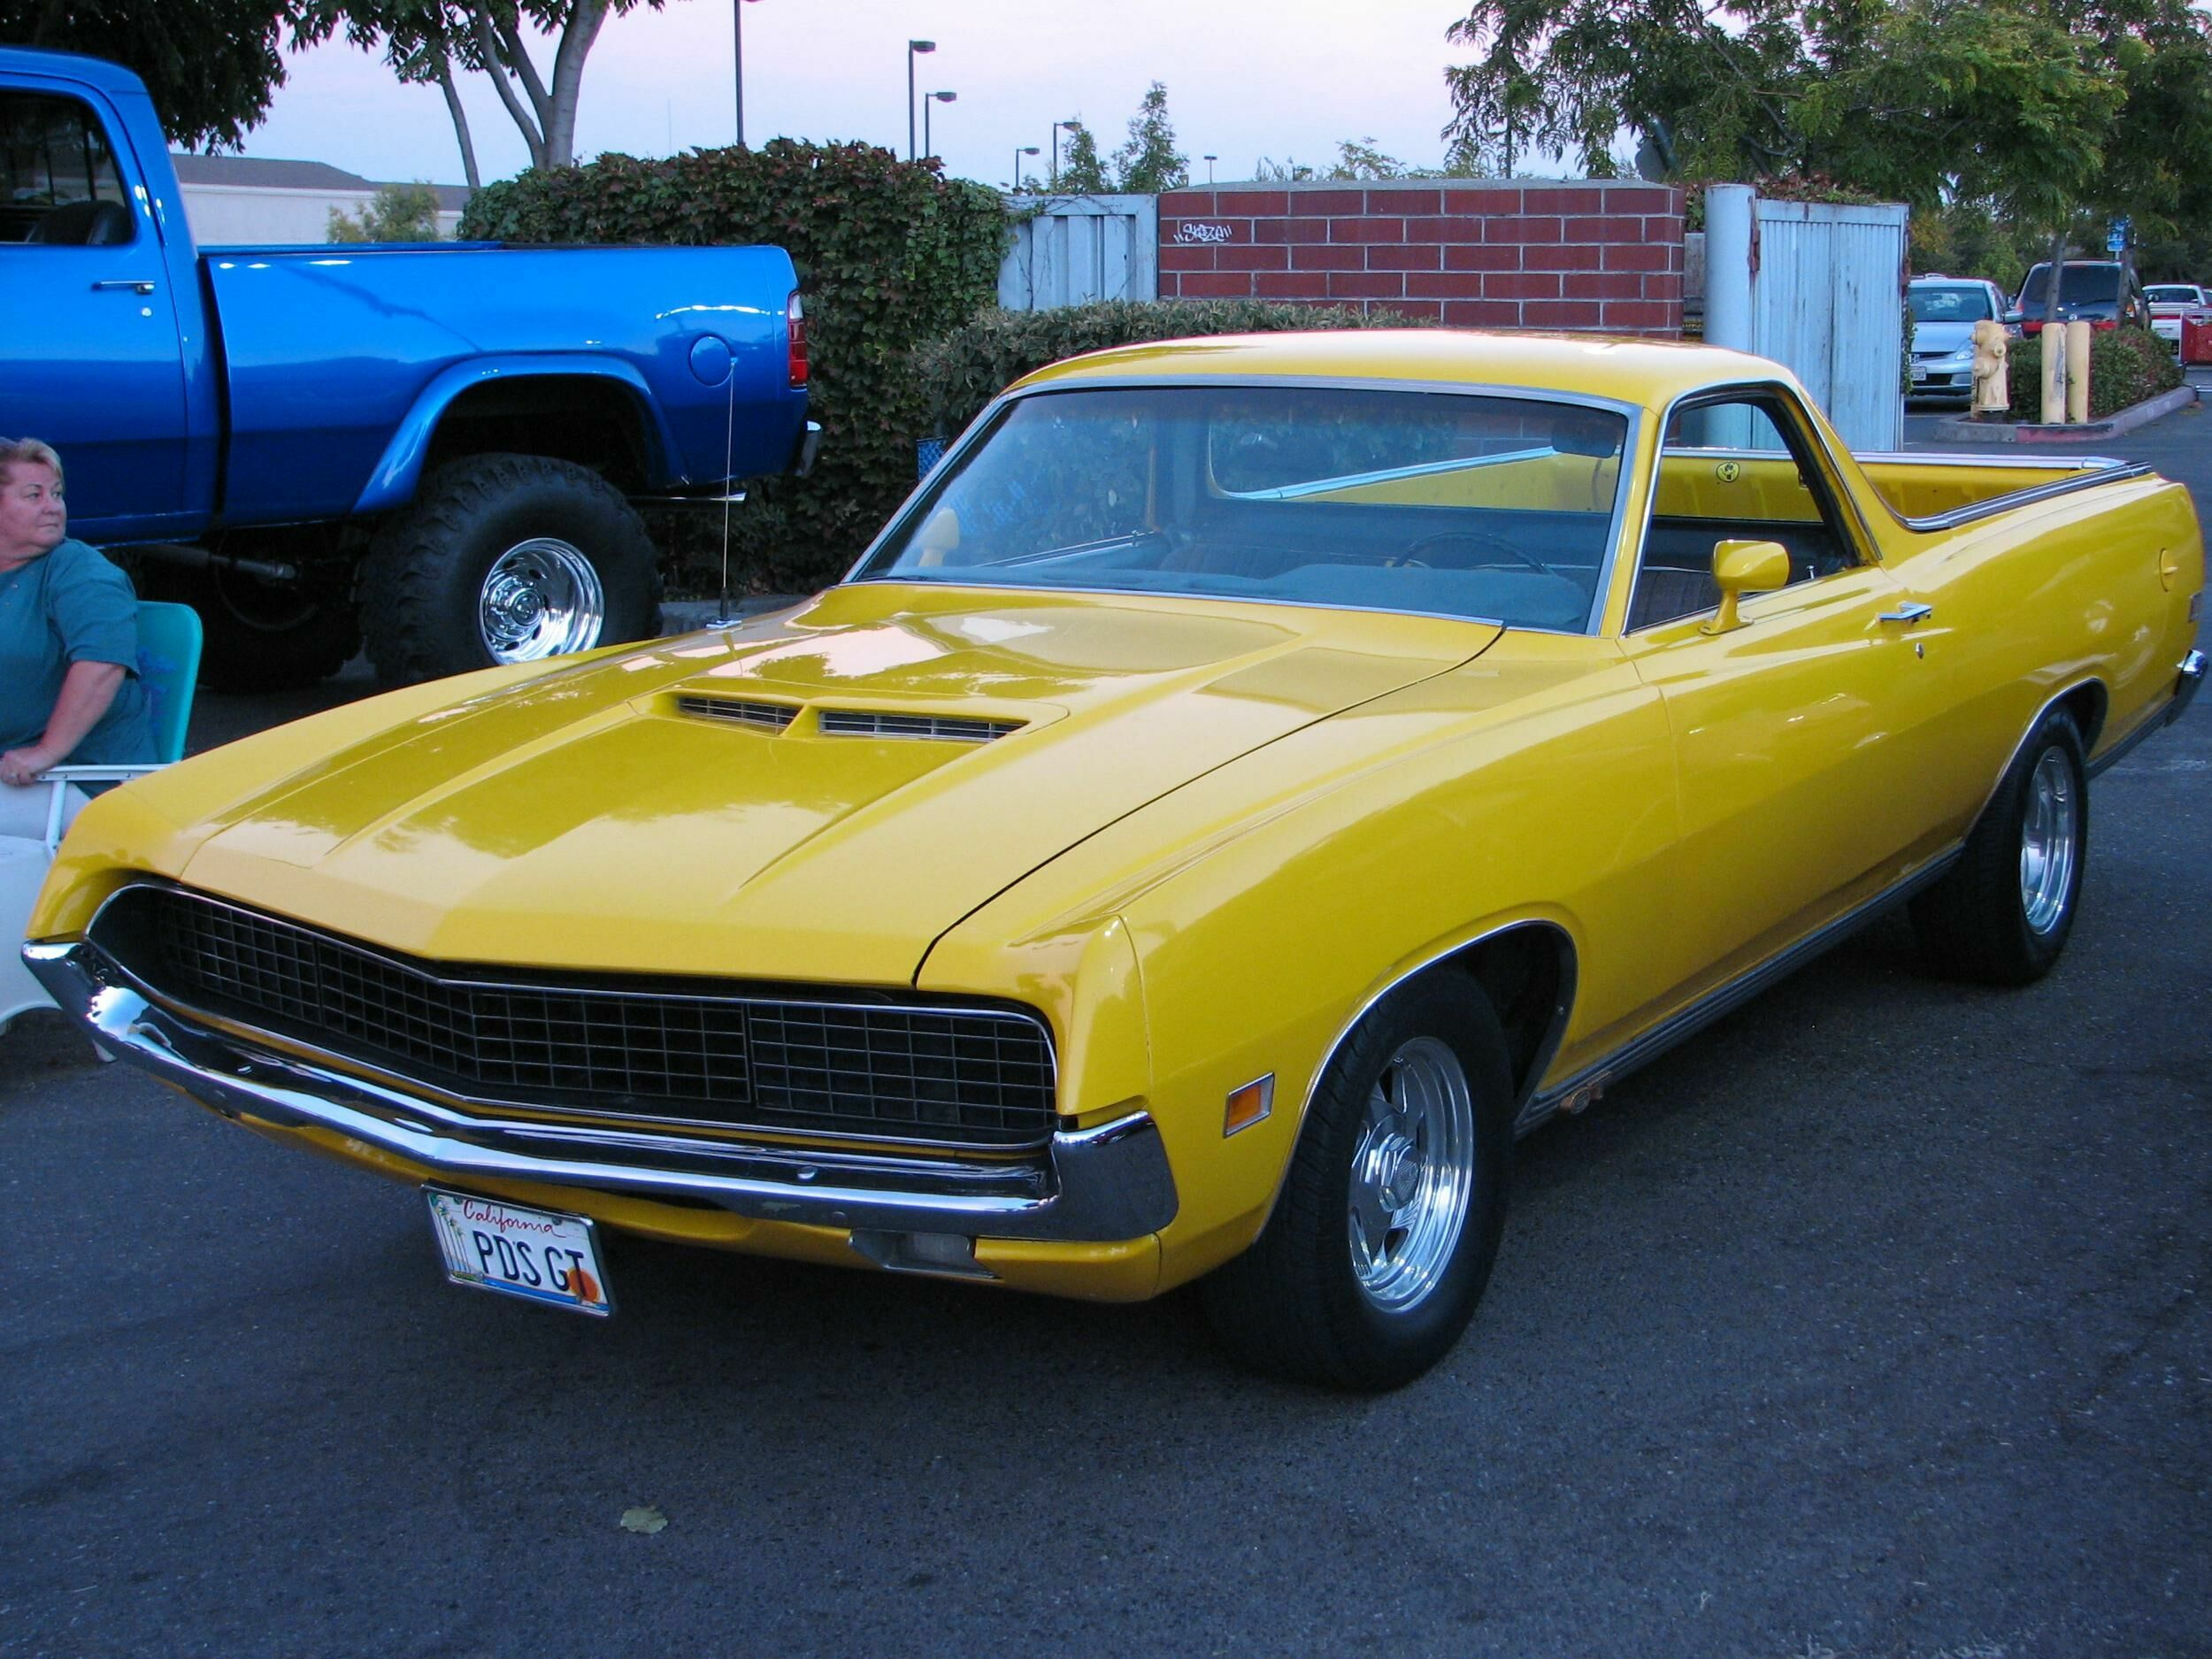 1971 Ford Ranchero GT 'PDS GT' 1 | Flickr - Photo Sharing!